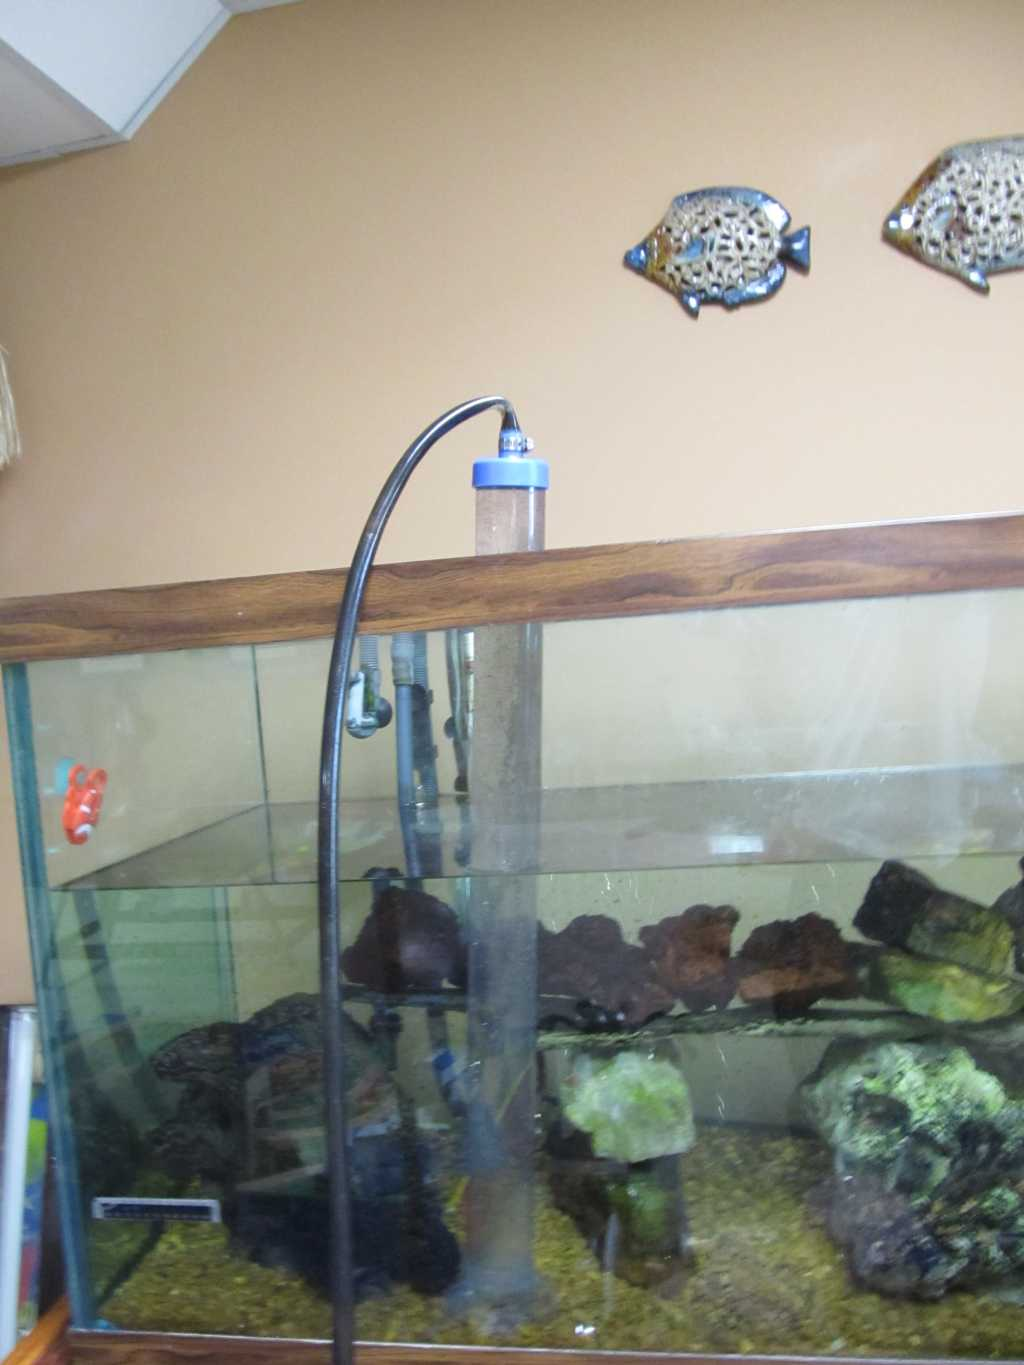 101 things never to do to your house june 2012 for Fish tank siphon